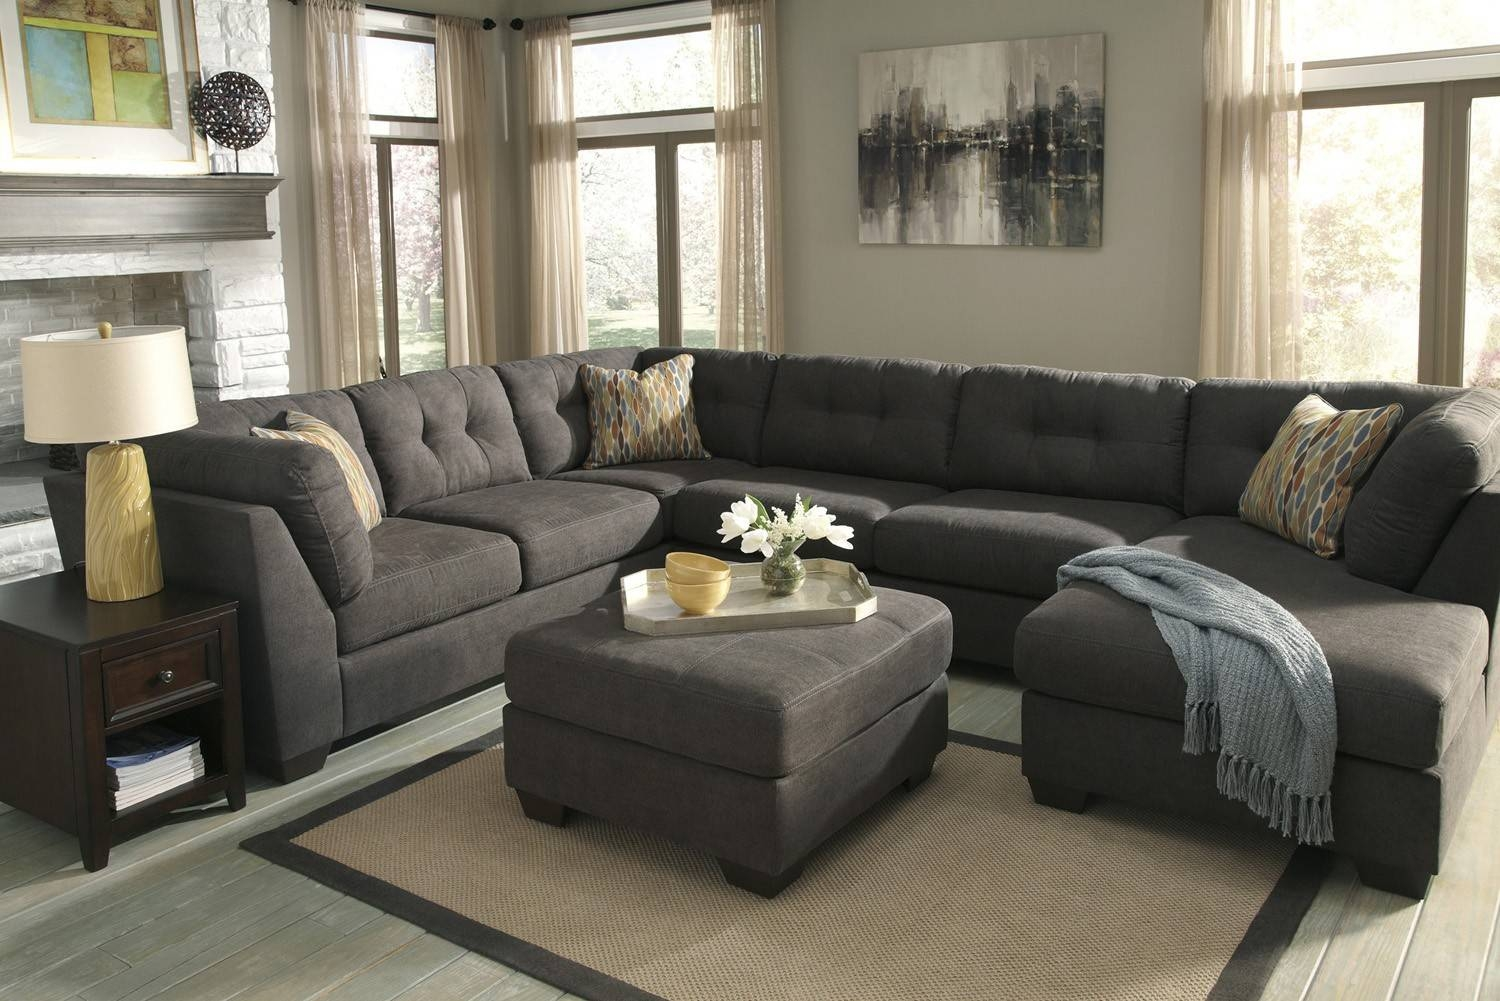 Delta City Steel 3 Piece Sectional Sofa With Left Arm Facing Inside 3 Piece Sectional Sleeper Sofa (View 13 of 30)